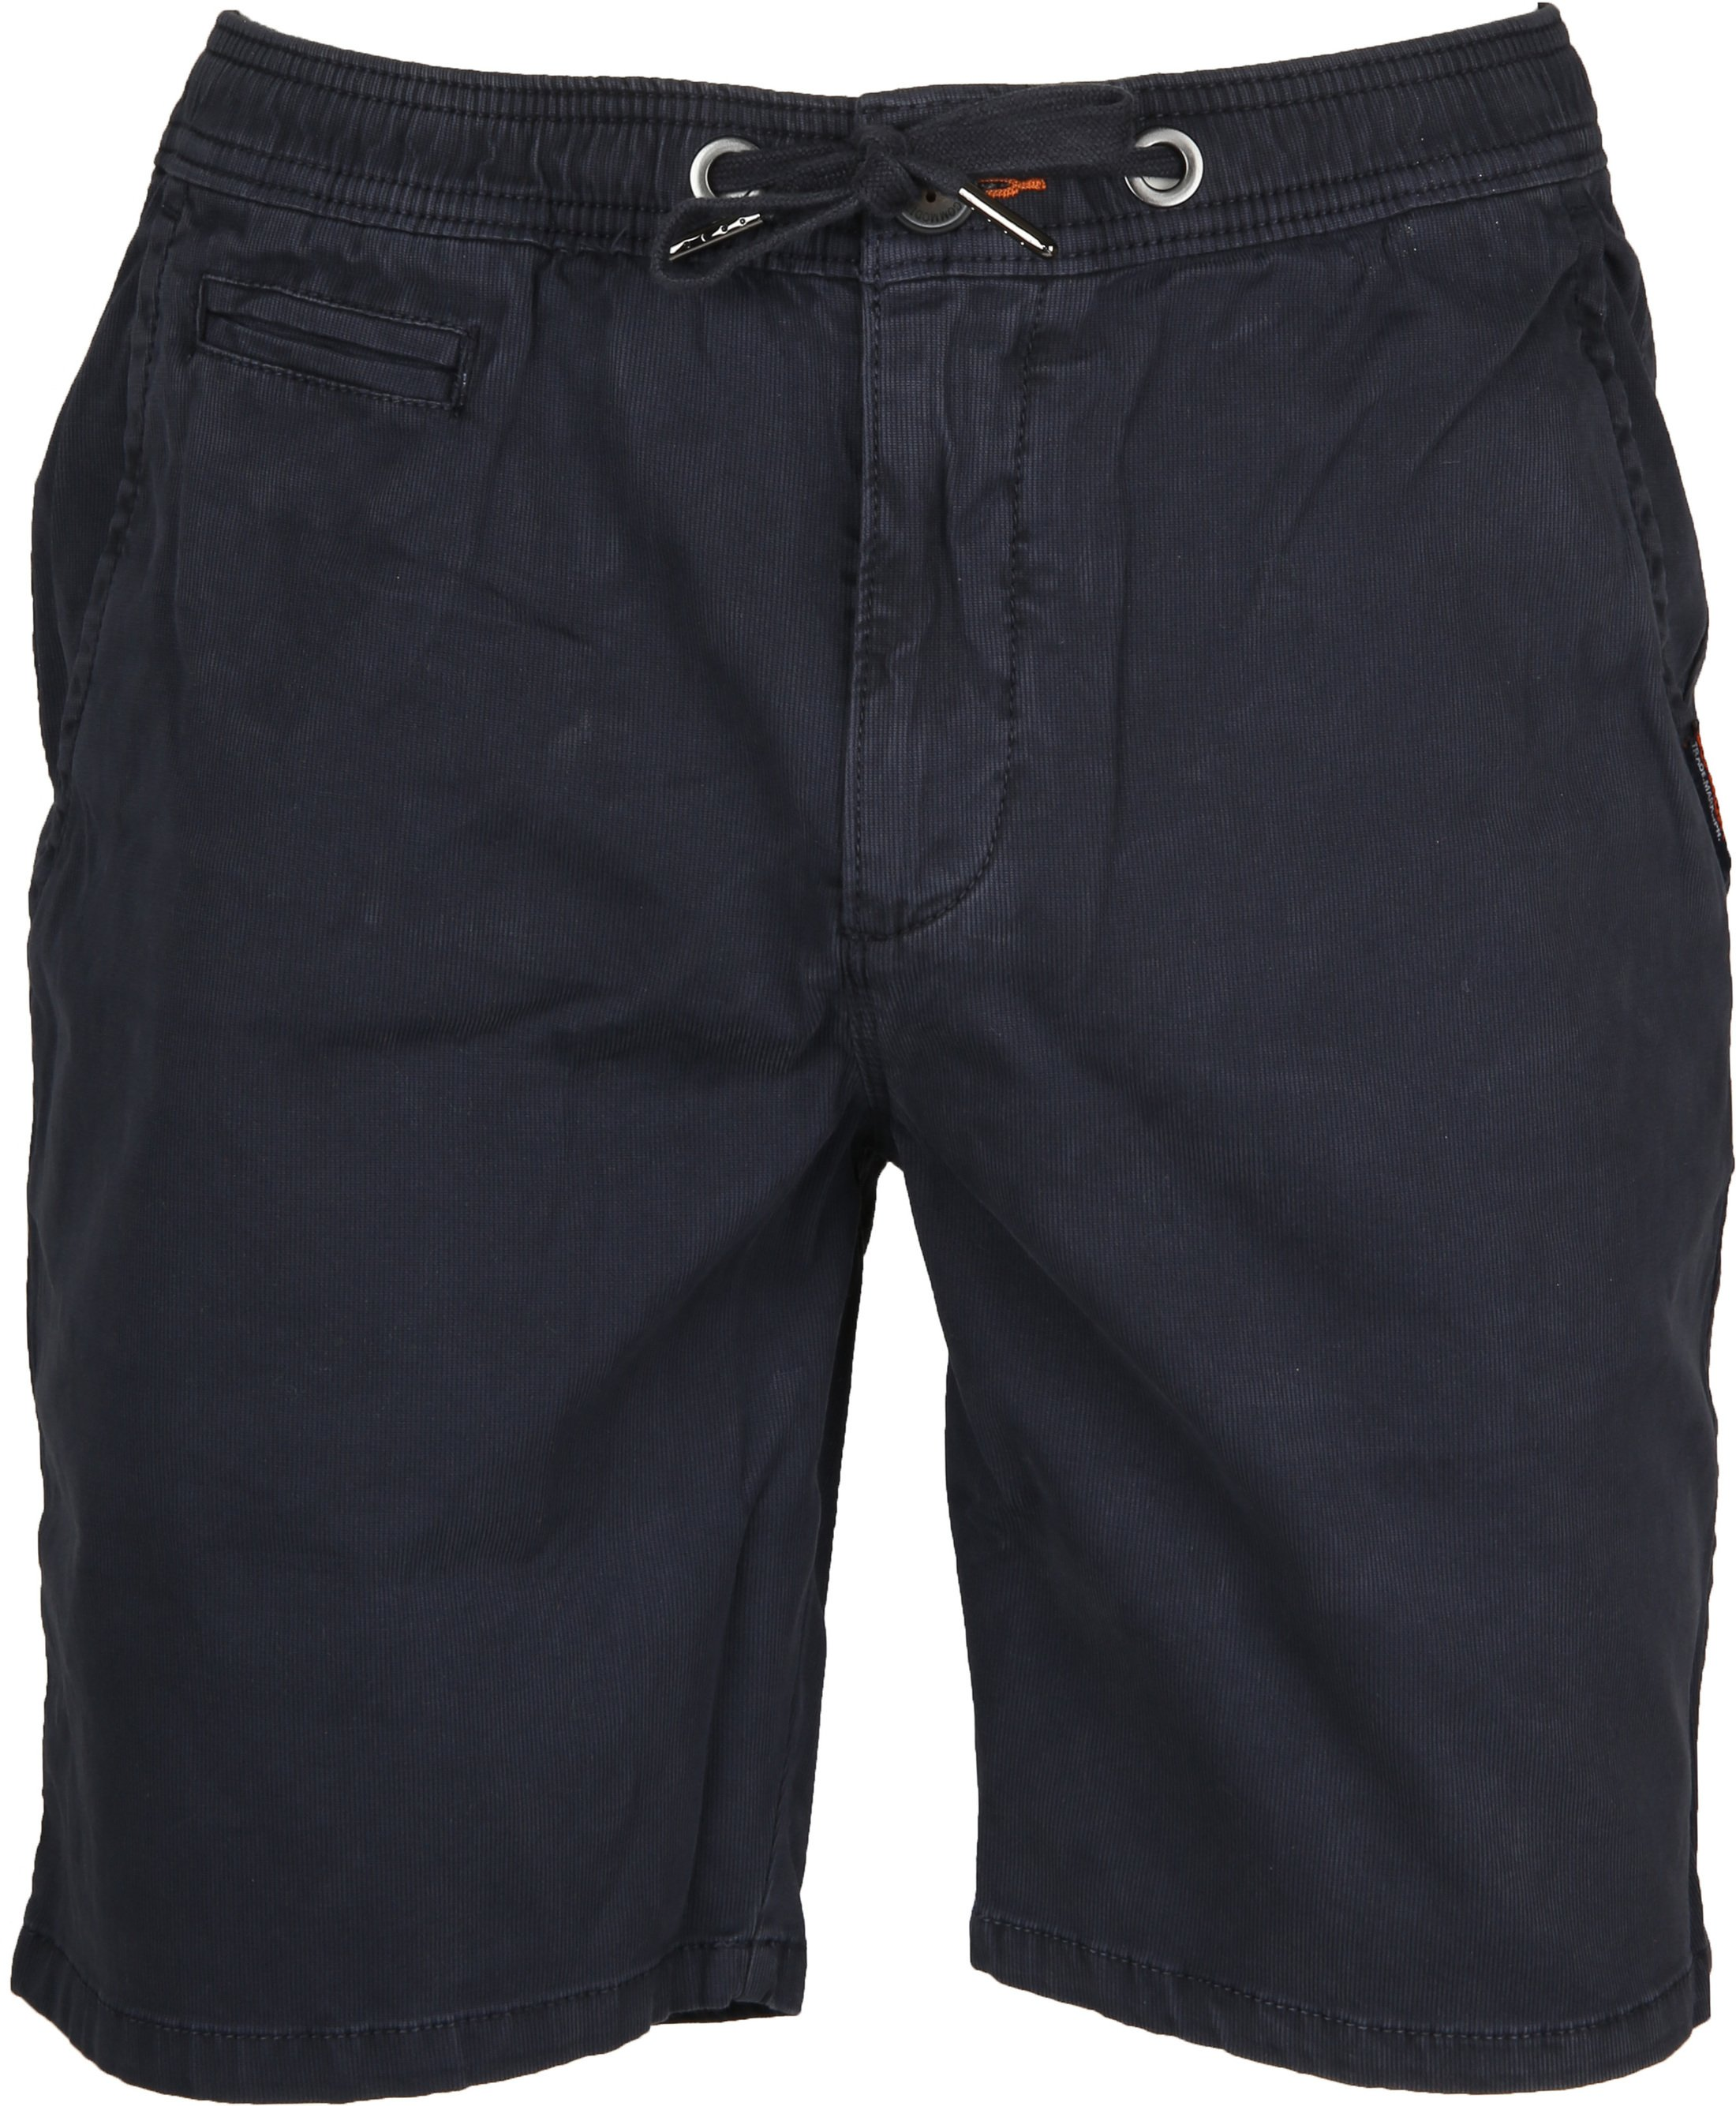 Superdry Sunscorched Short Dark Blue foto 0